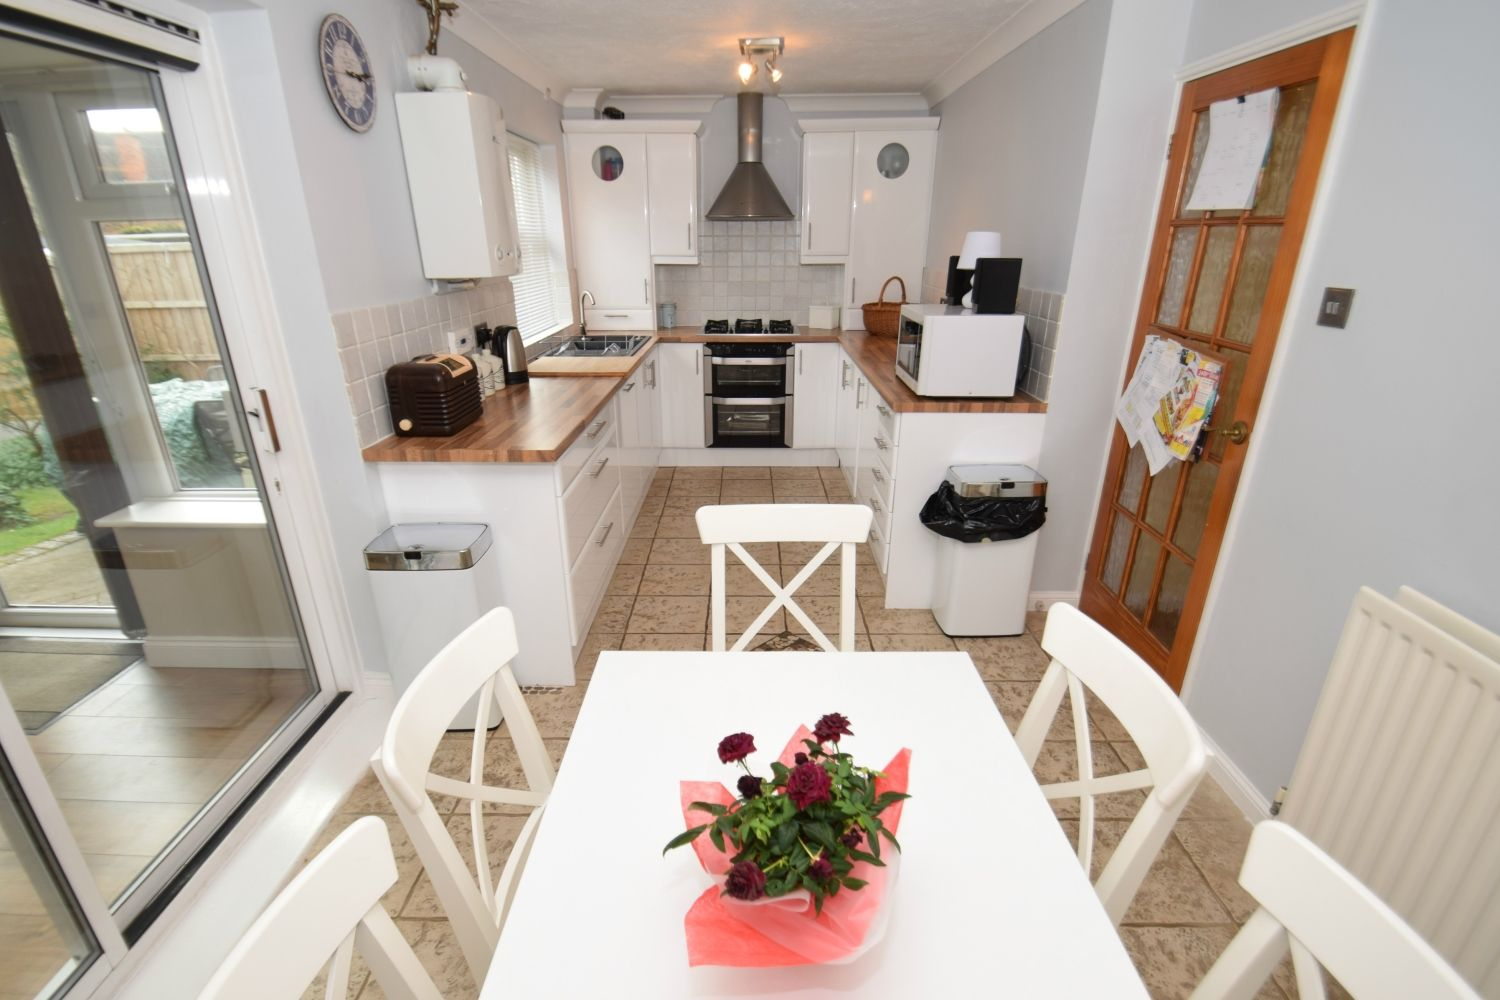 3 bed detached for sale in Foxes Close, Blackwell, B60 4